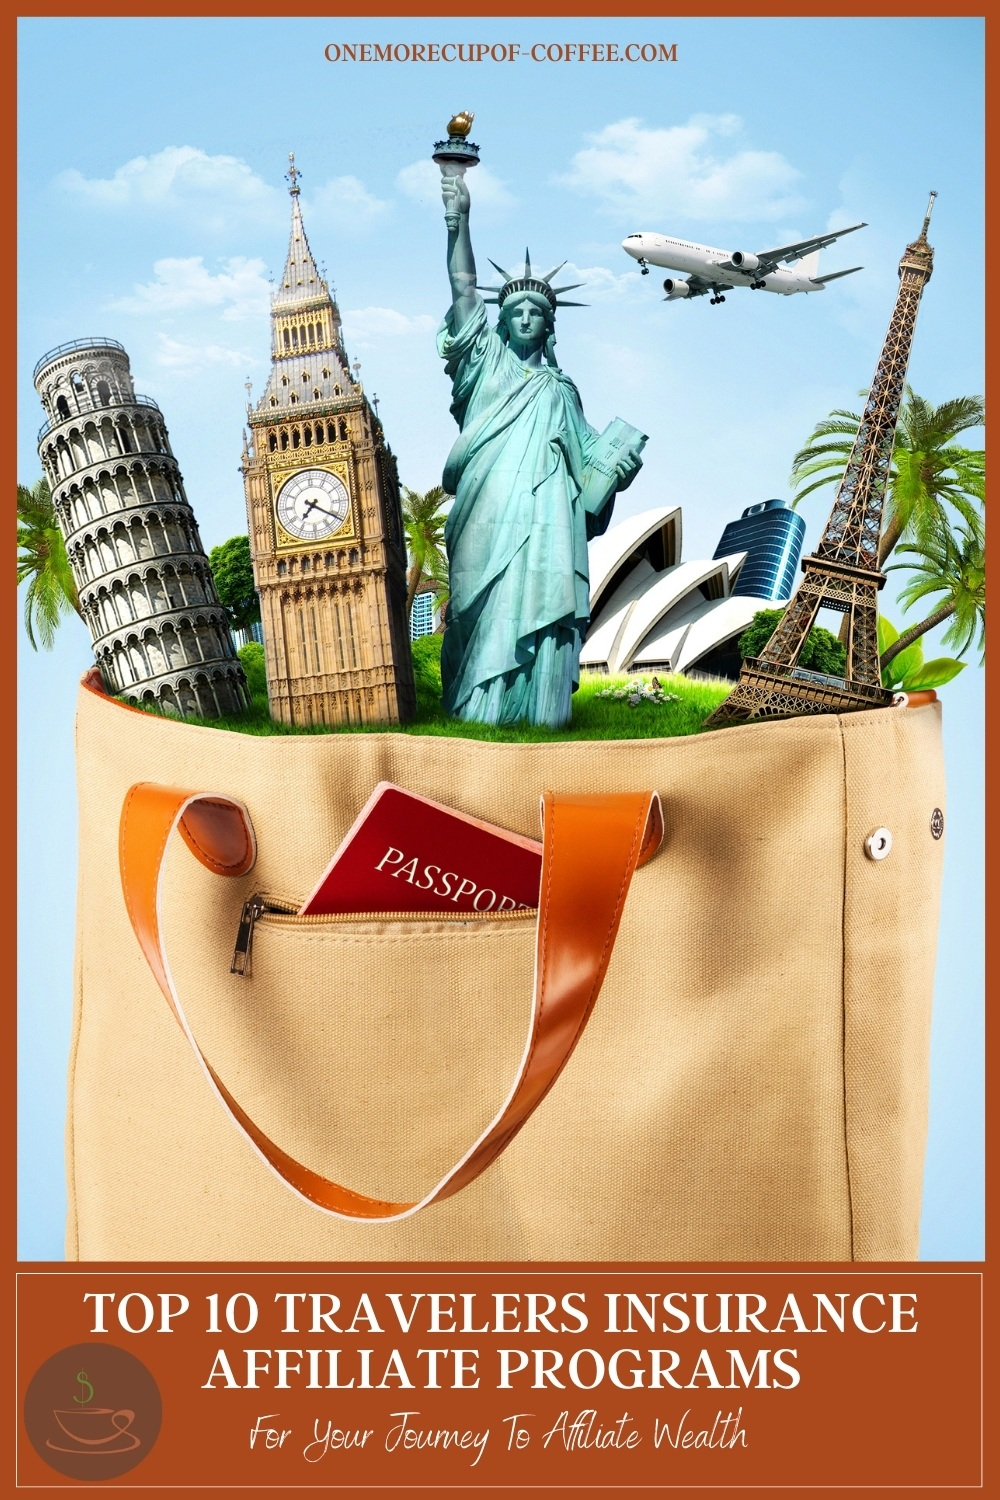 """brown bag full of little figurines of Leaning Tower of Pisa, Big Ben, Statue of Liberty, Sydney Opera House, and Eiffel Tower; with text at the bottom in brown banner """"Top 10 Travelers Insurance Affiliate Programs For Your Journey To Affiliate Wealth"""""""